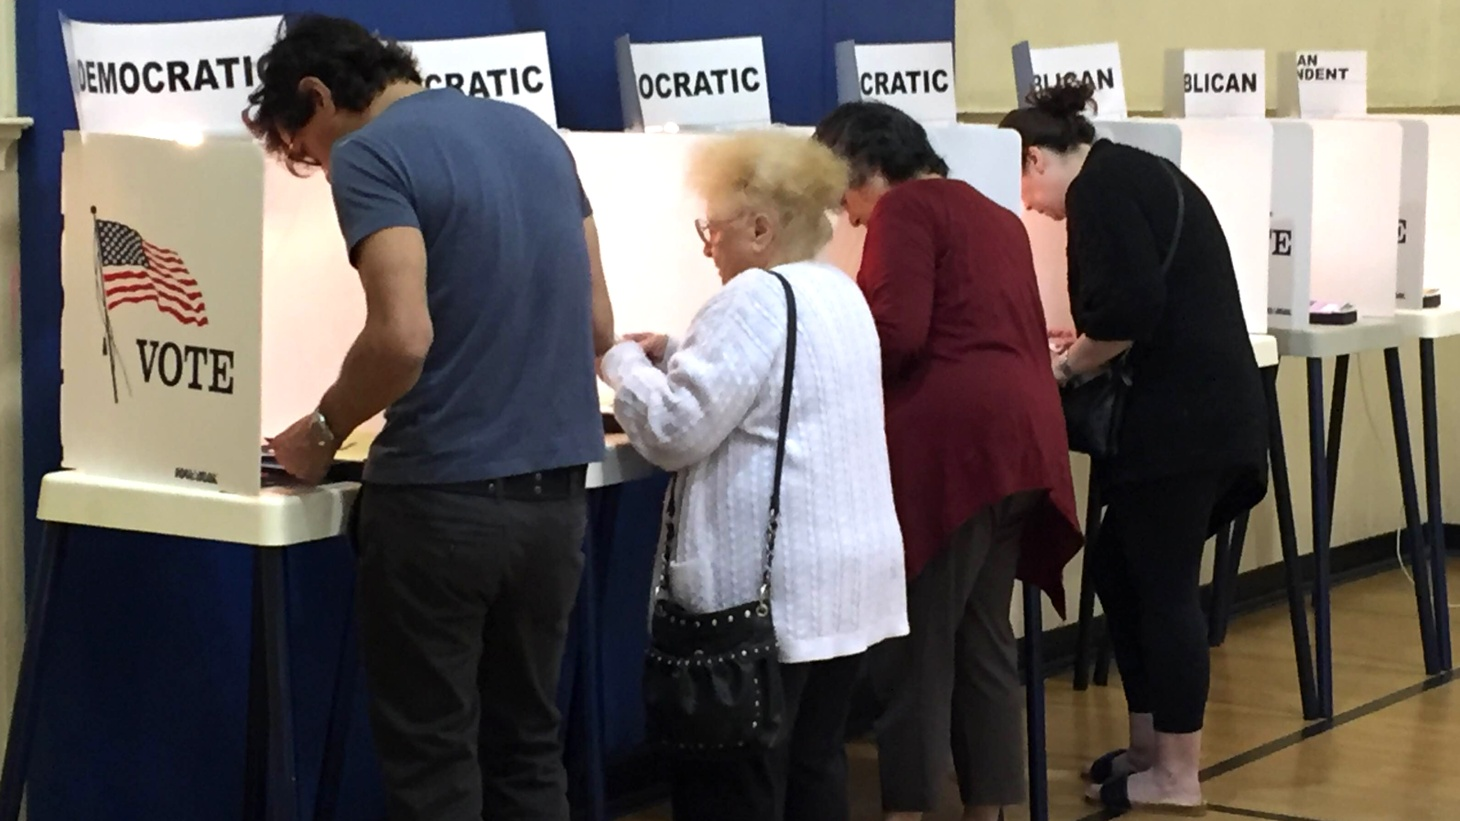 It's primary day in California. Should the AP and other news outlets have called the Democratic presidential race for Hillary Clinton last night? Will the announcement impact voter turnout?